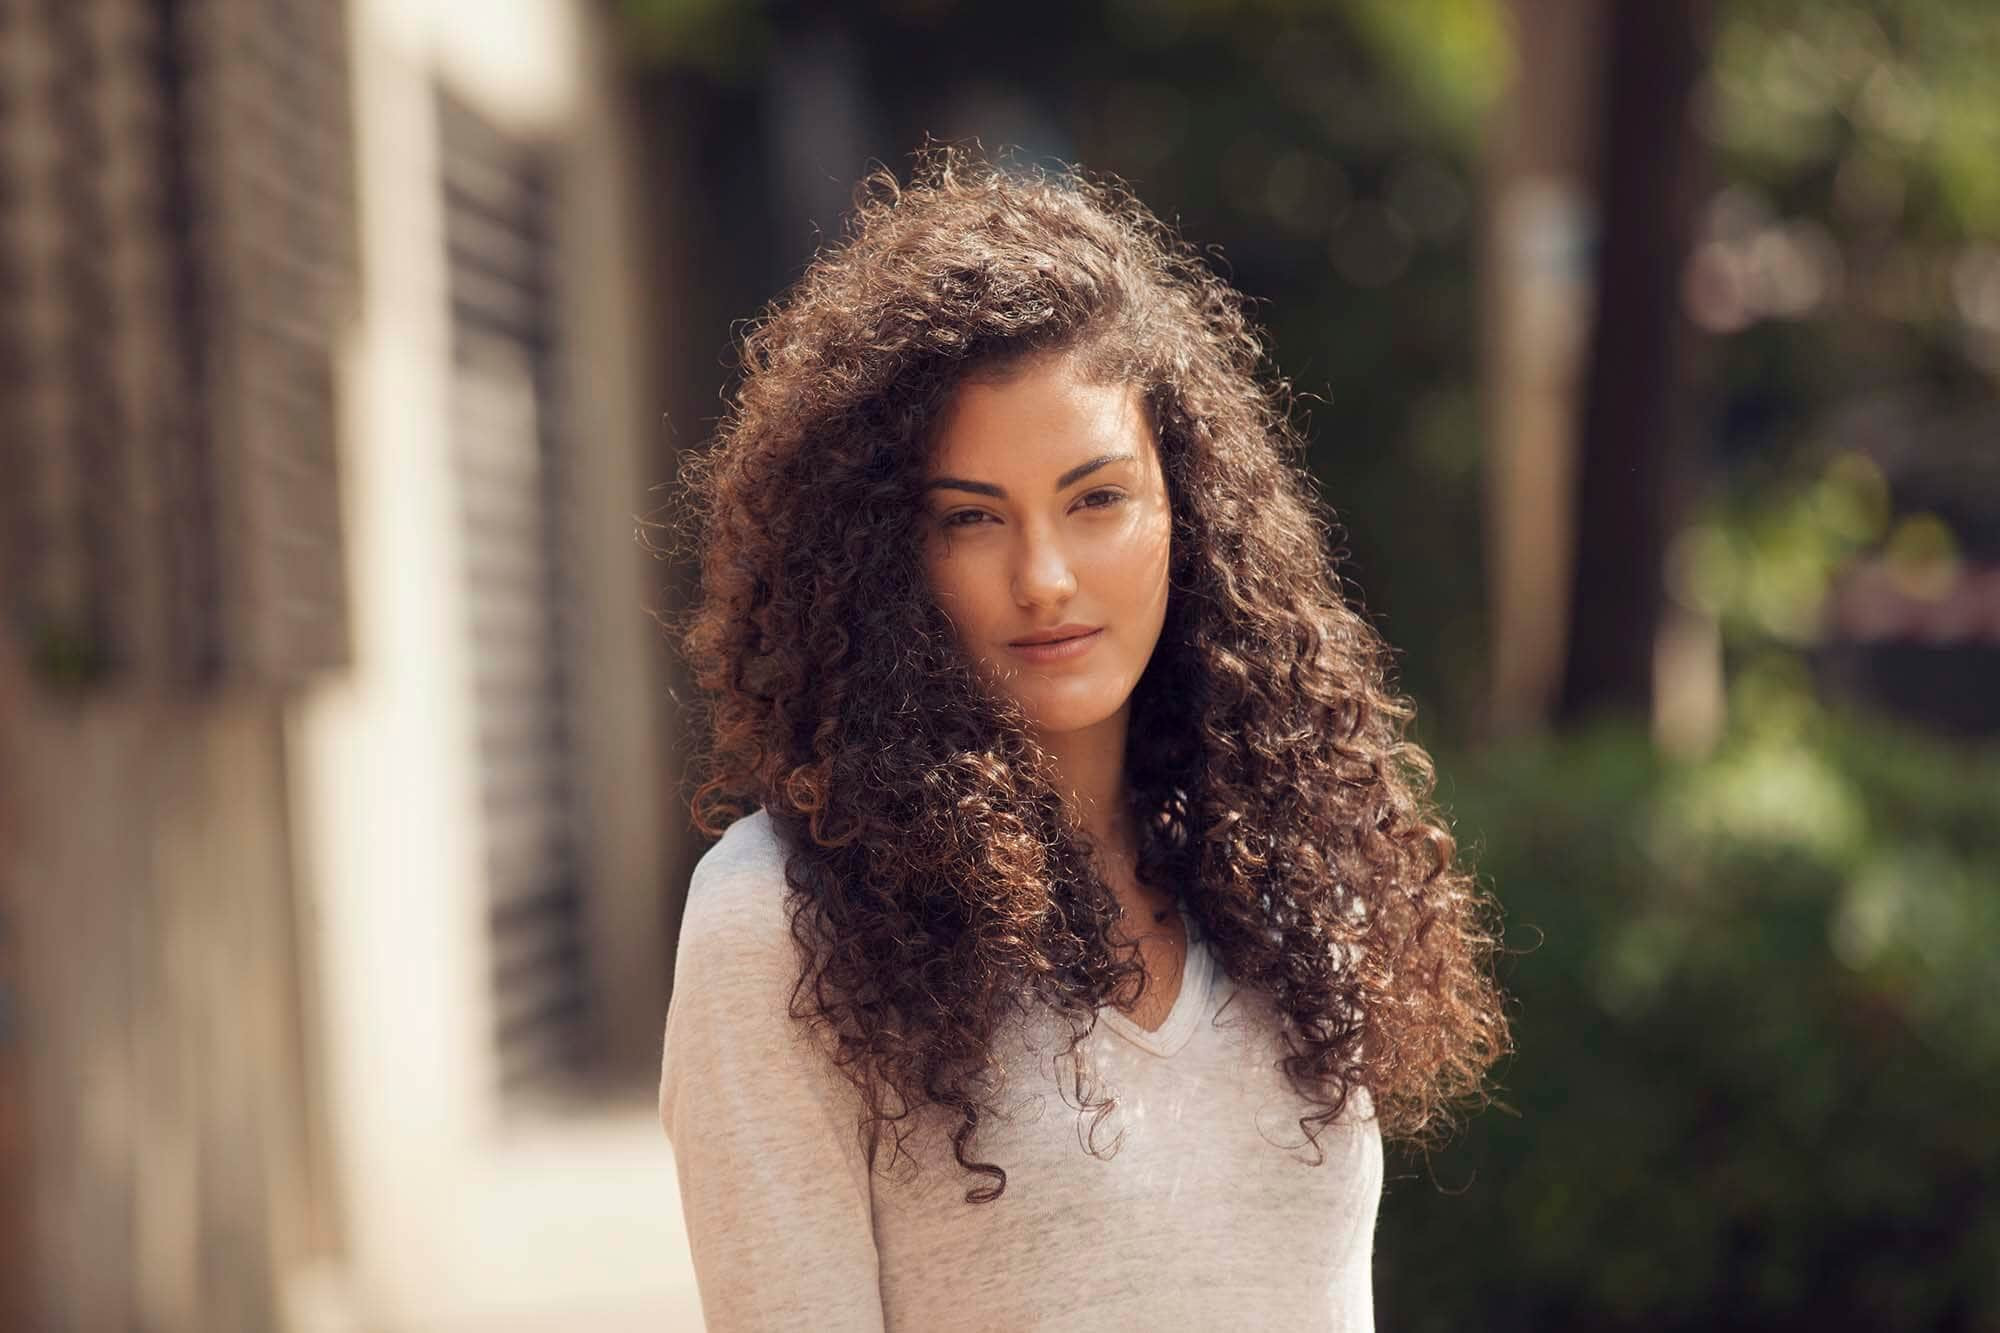 Hairstyles For Curly Thick Hair  16 Easy and Modern Hairstyles for Thick Curly Hair